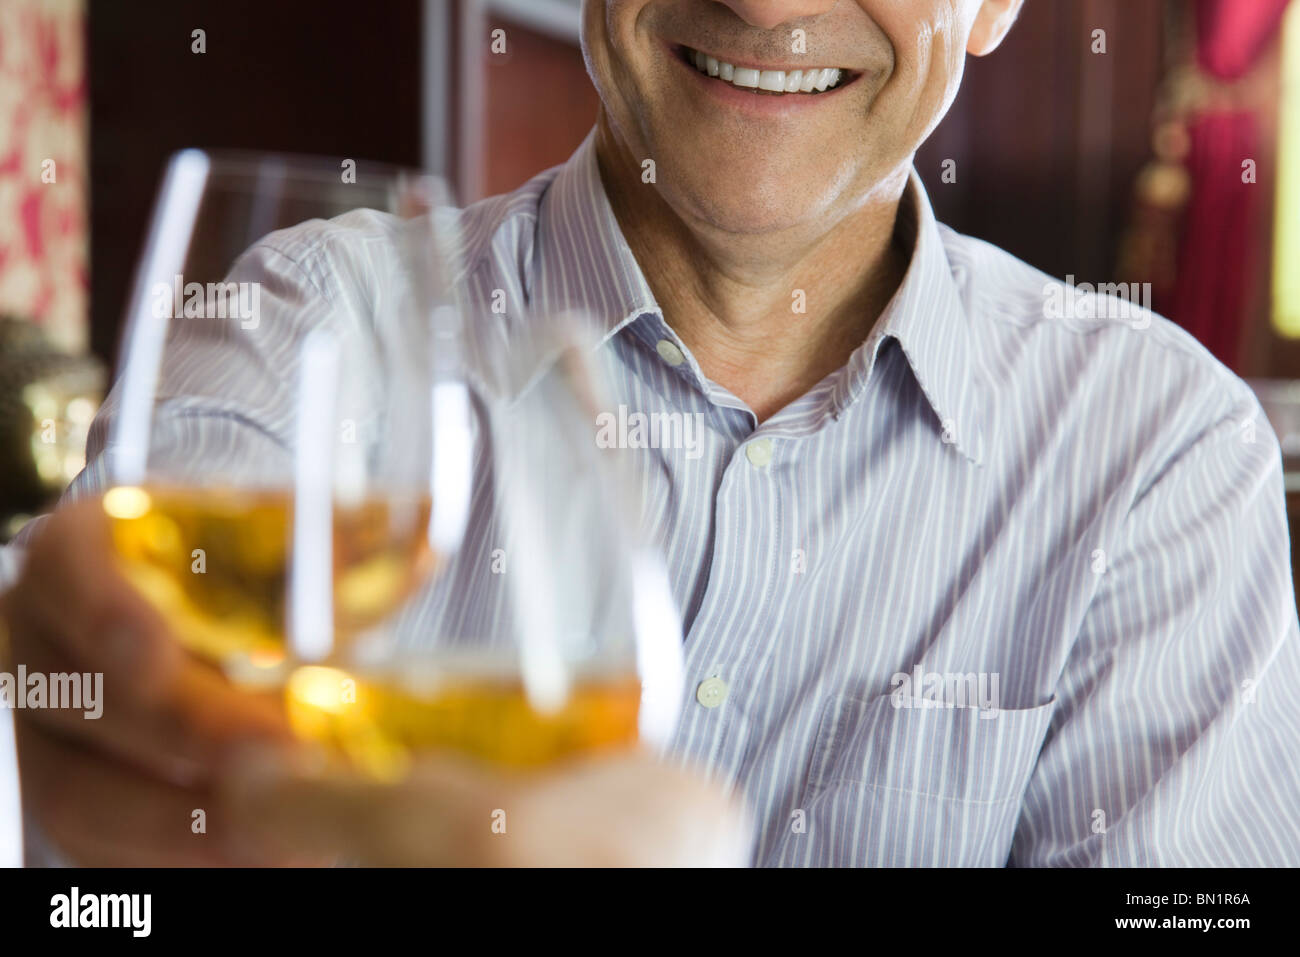 Man clinking glasses with companion in restaurant - Stock Image